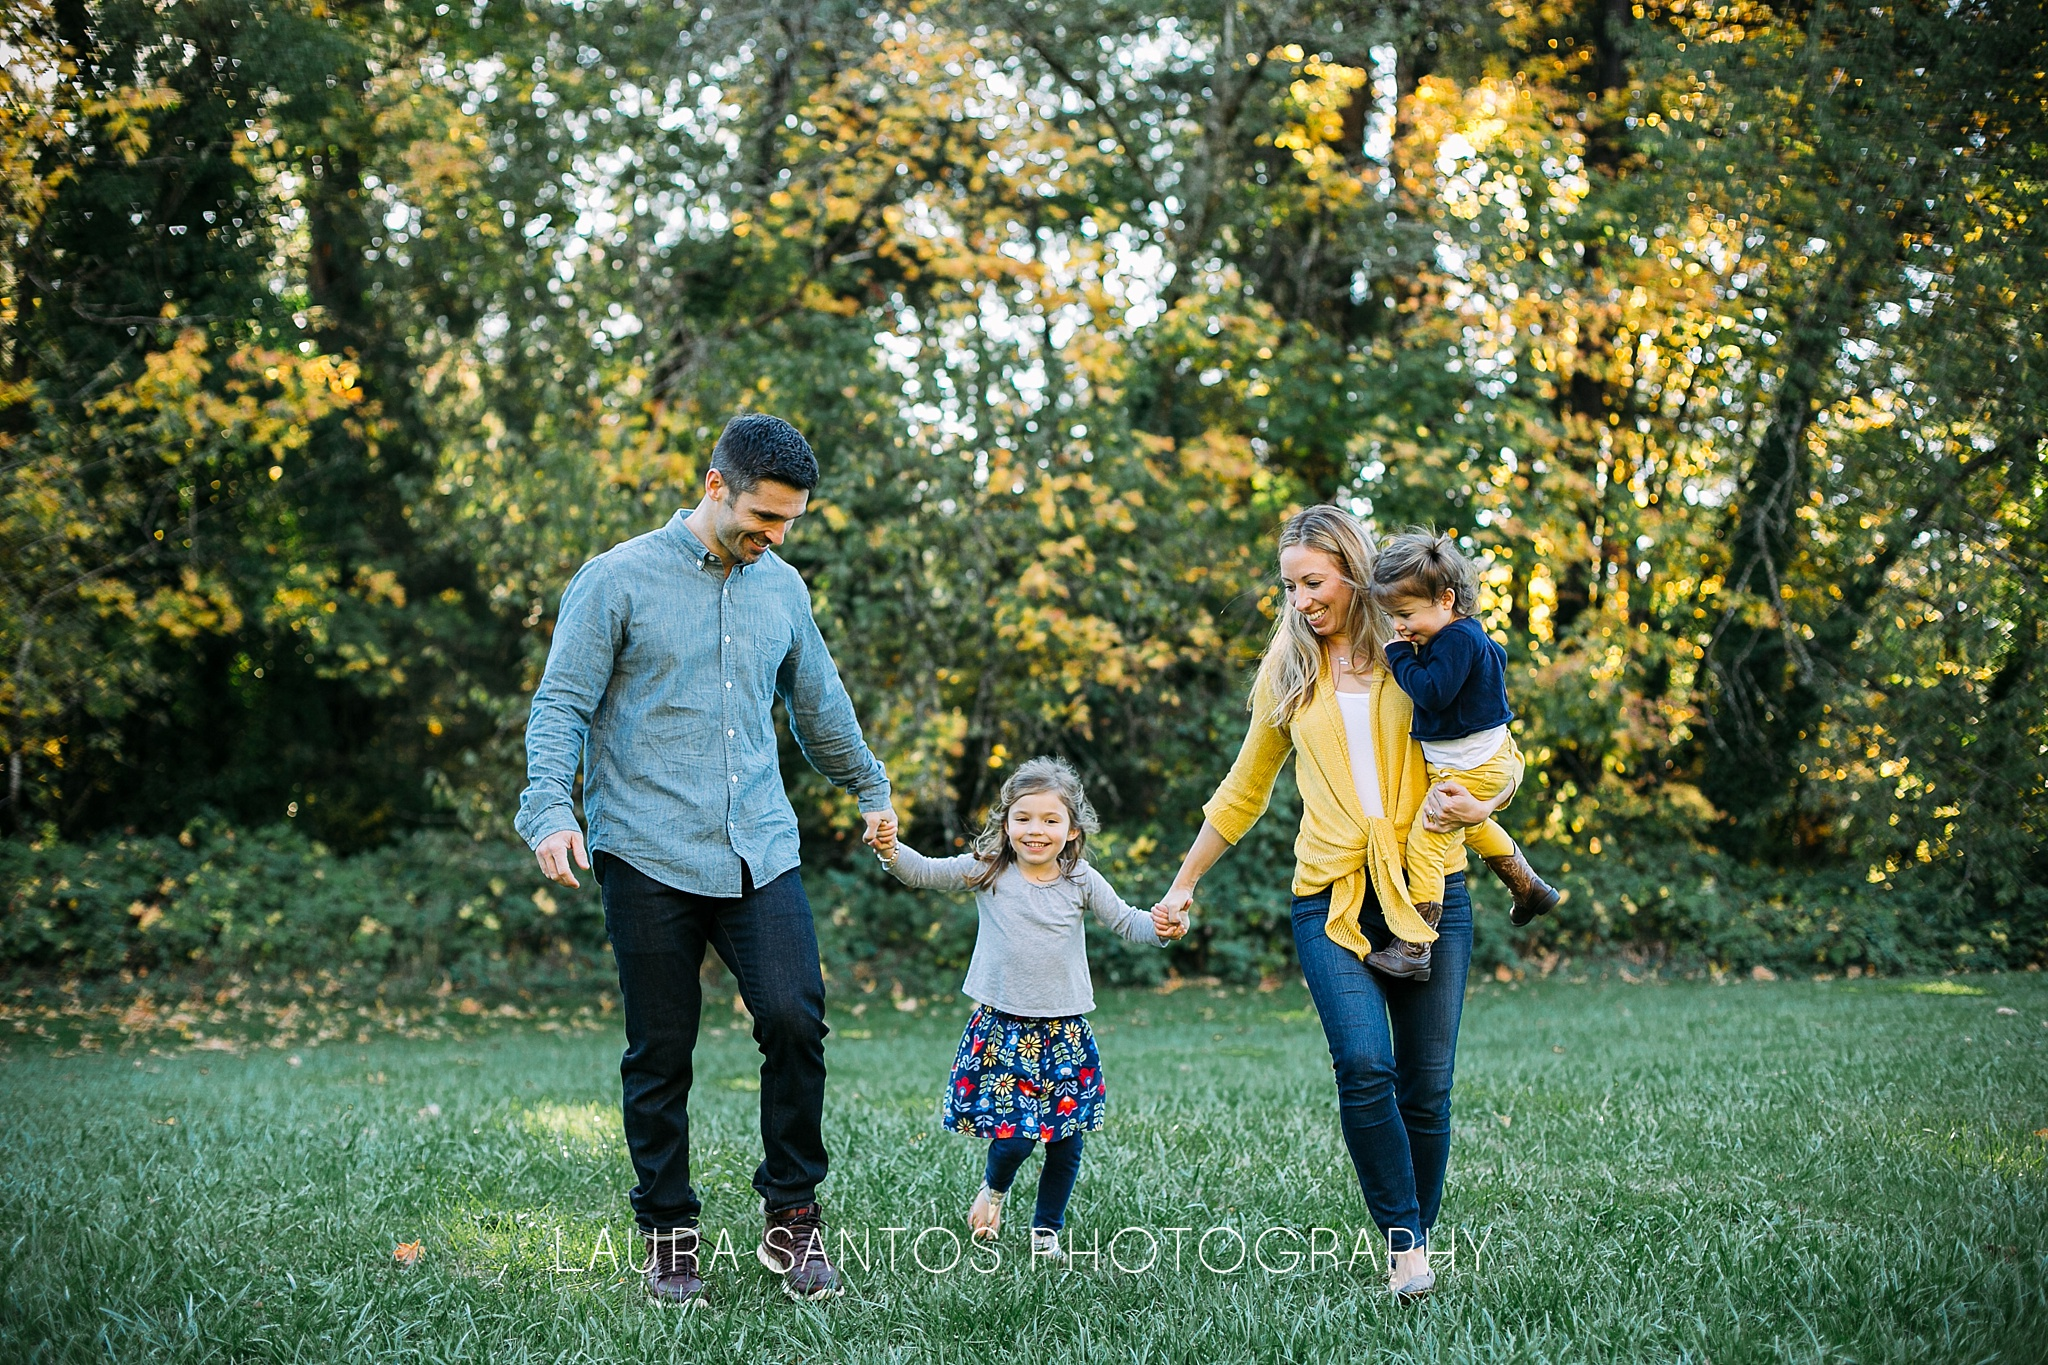 Laura Santos Photography Portland Oregon Family Photographer_0082.jpg